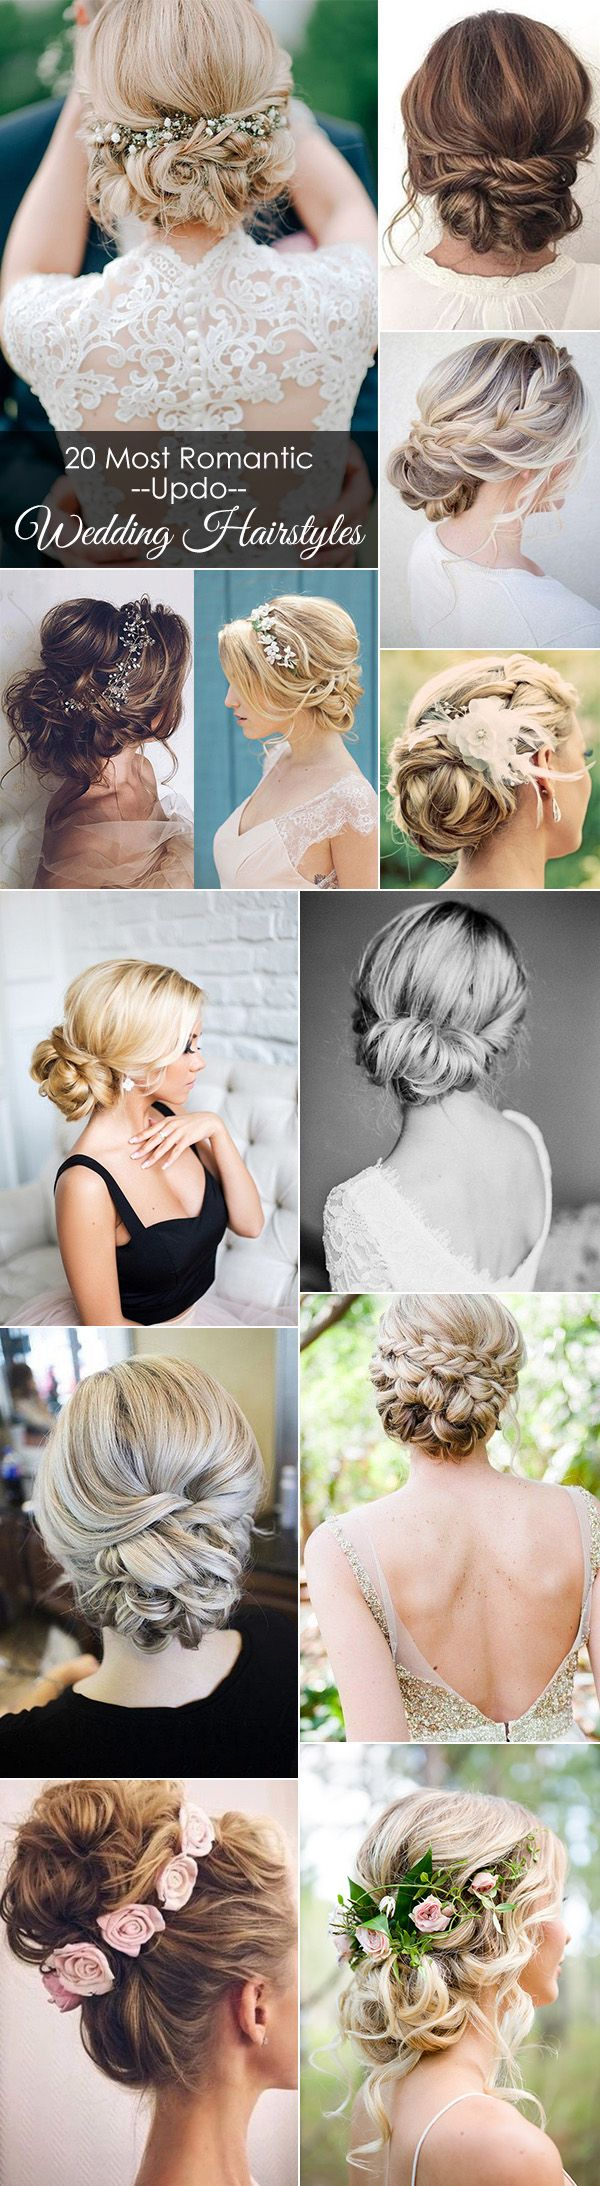 20 most romantic bridal updos wedding hairstyles to inspire